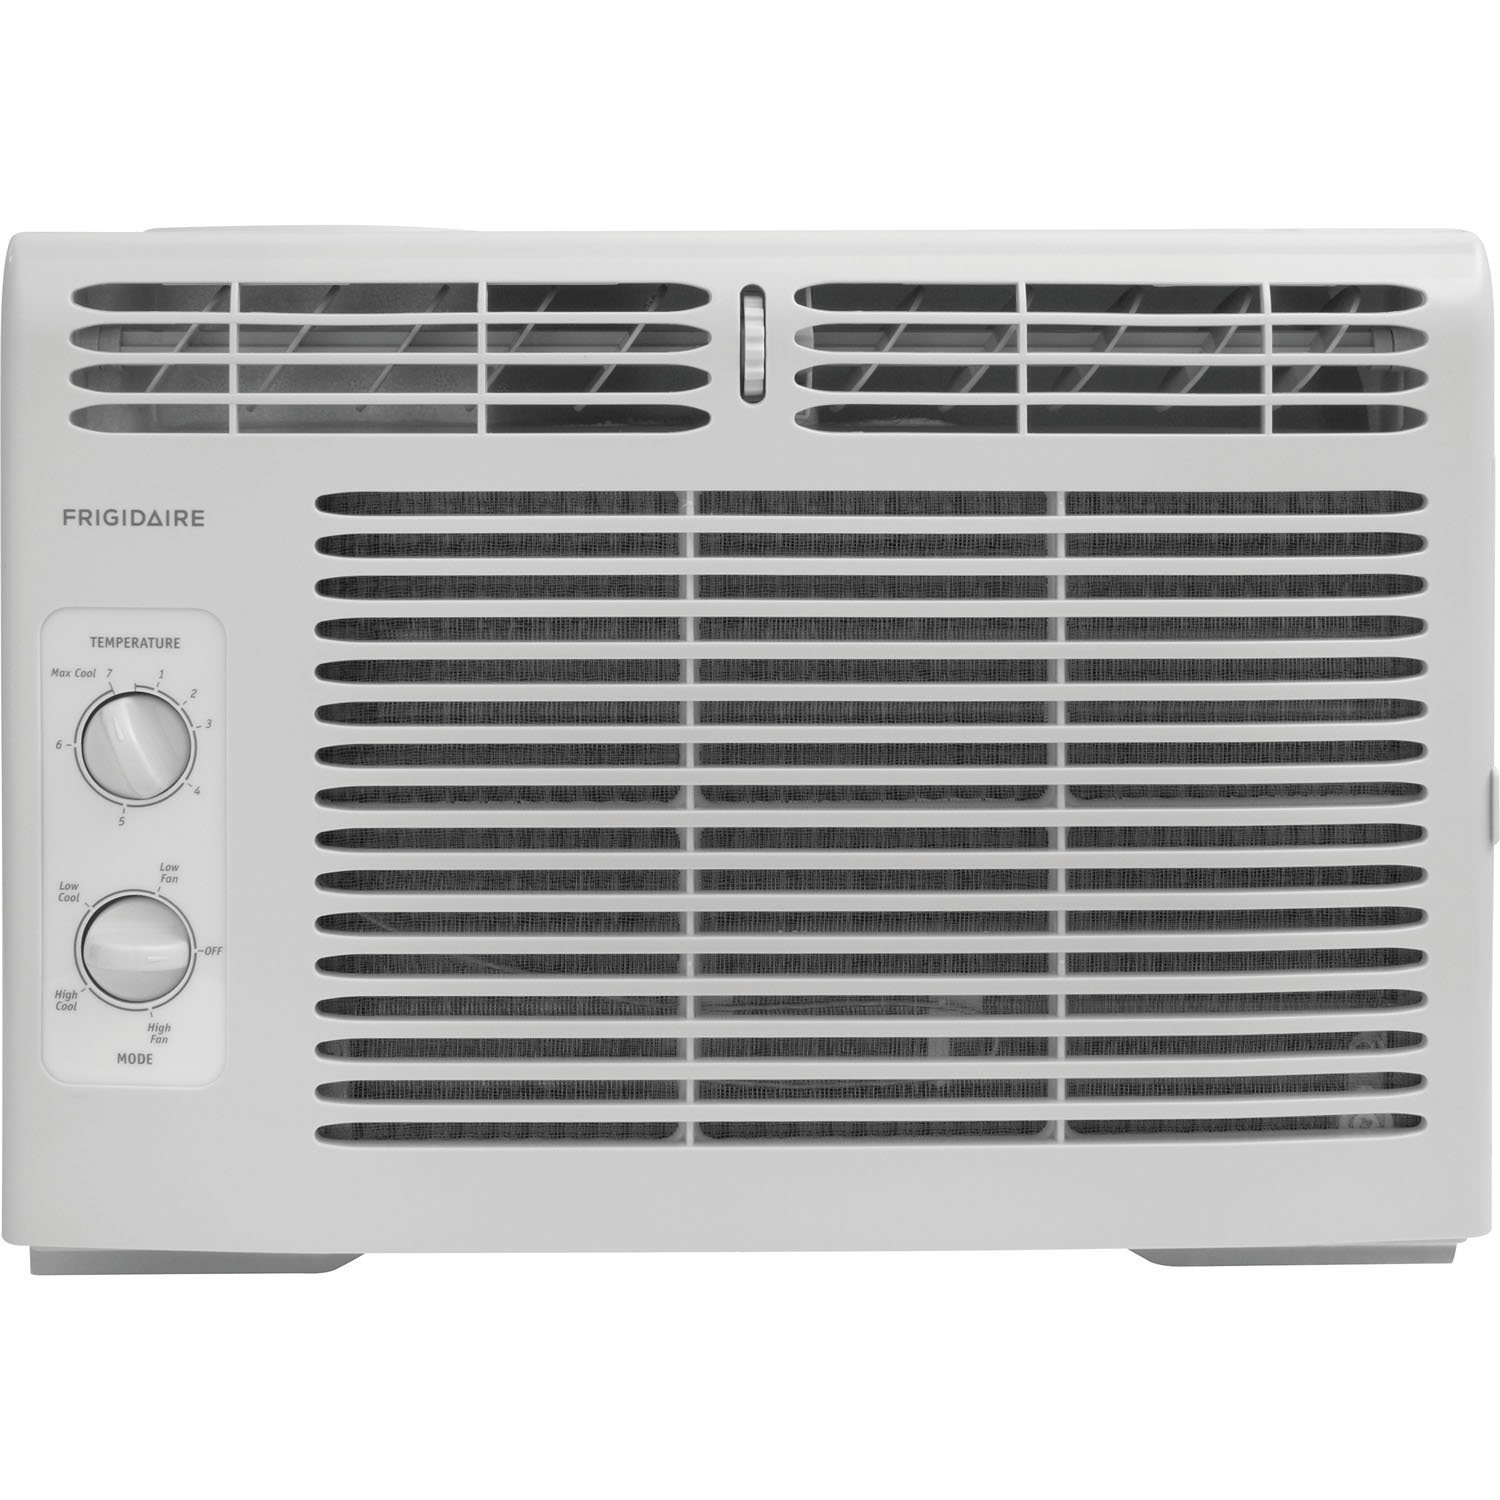 BTU 115V Window Mounted Mini Compact Air Conditione Air Conditioners #676465